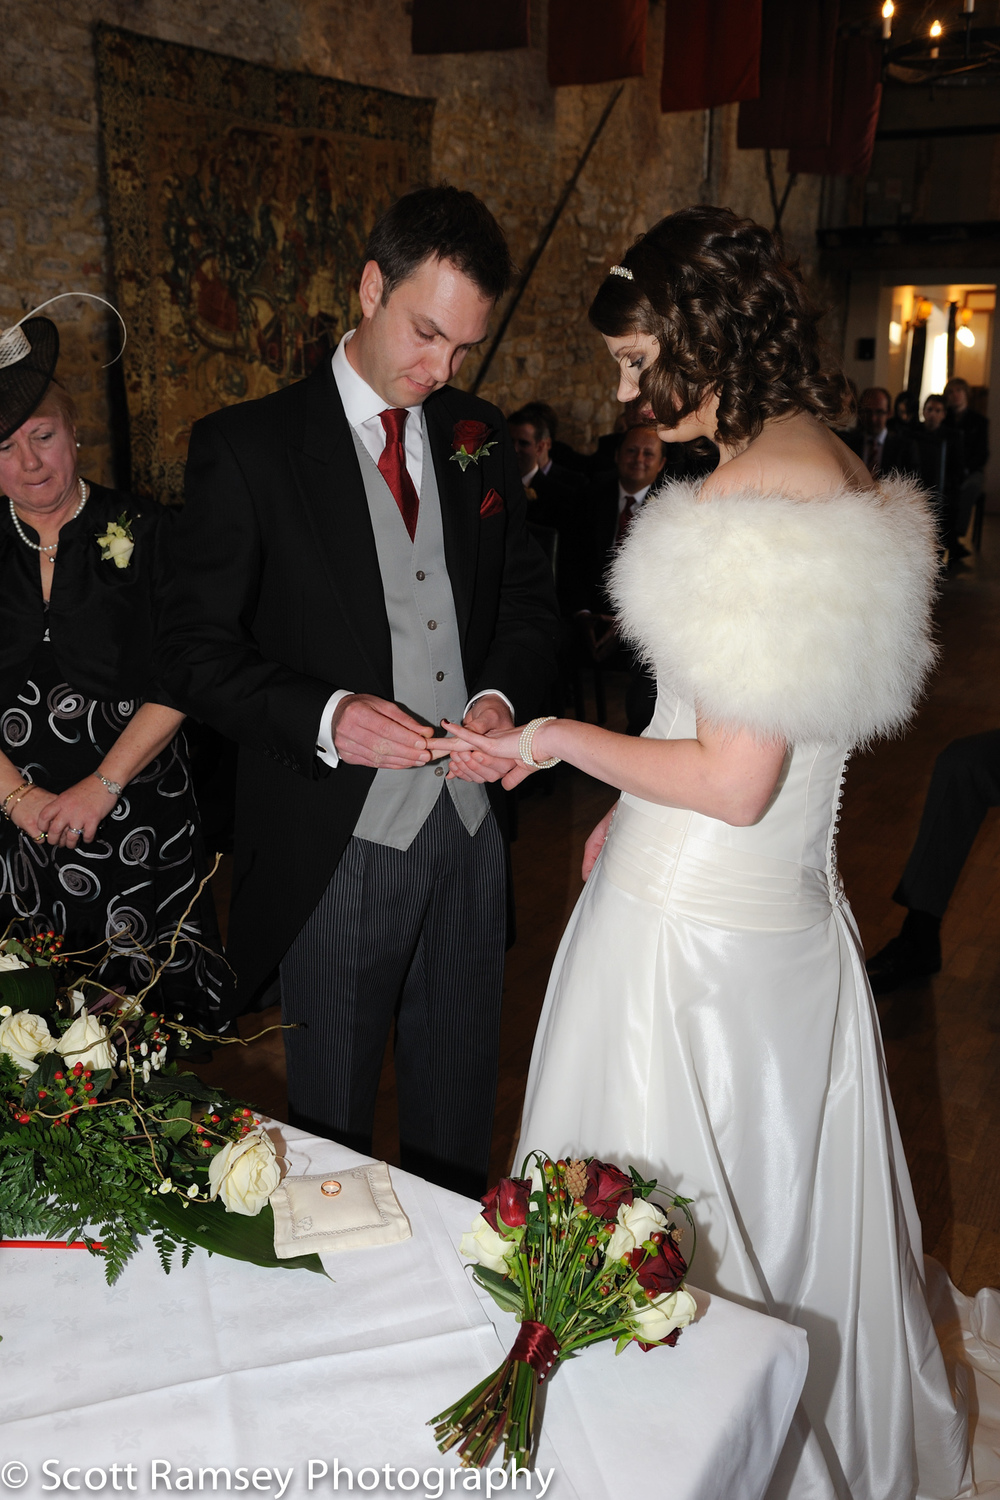 Winter-Wedding-Spread-Eagle-Hotel-Midhurst-Groom-Bride-Exchange-